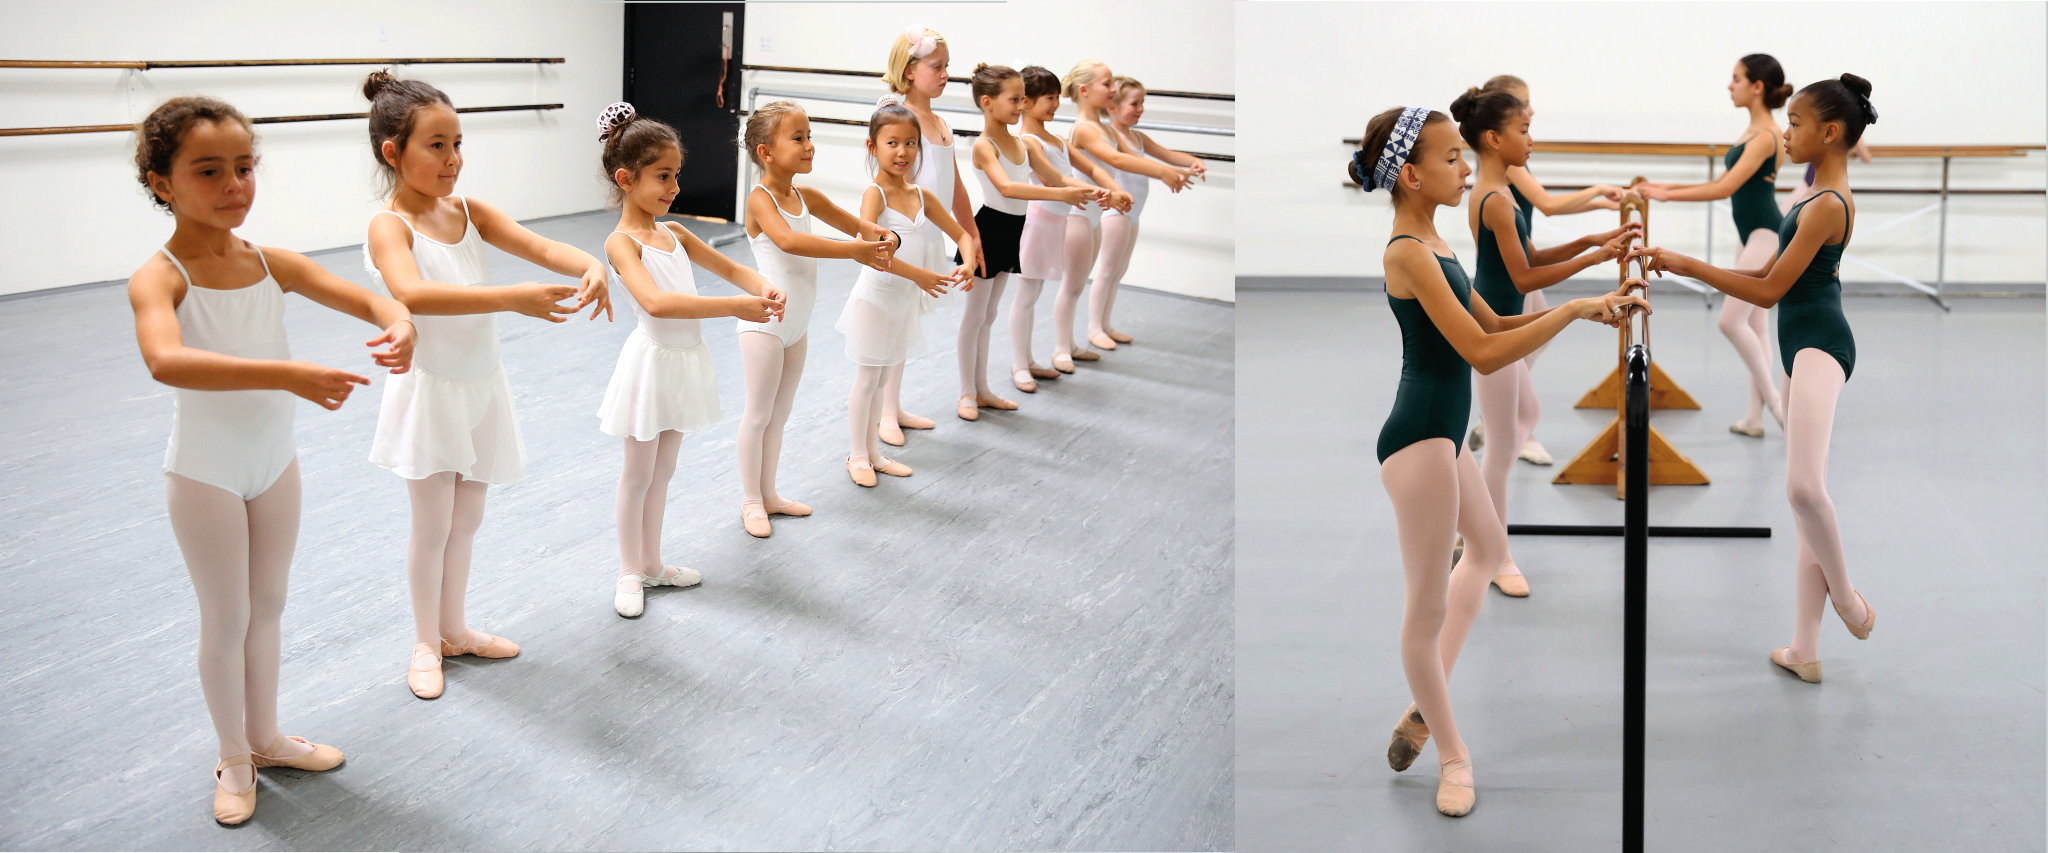 3b04b2003c0c Westside Ballet - Training in classical ballet for all ages and ...